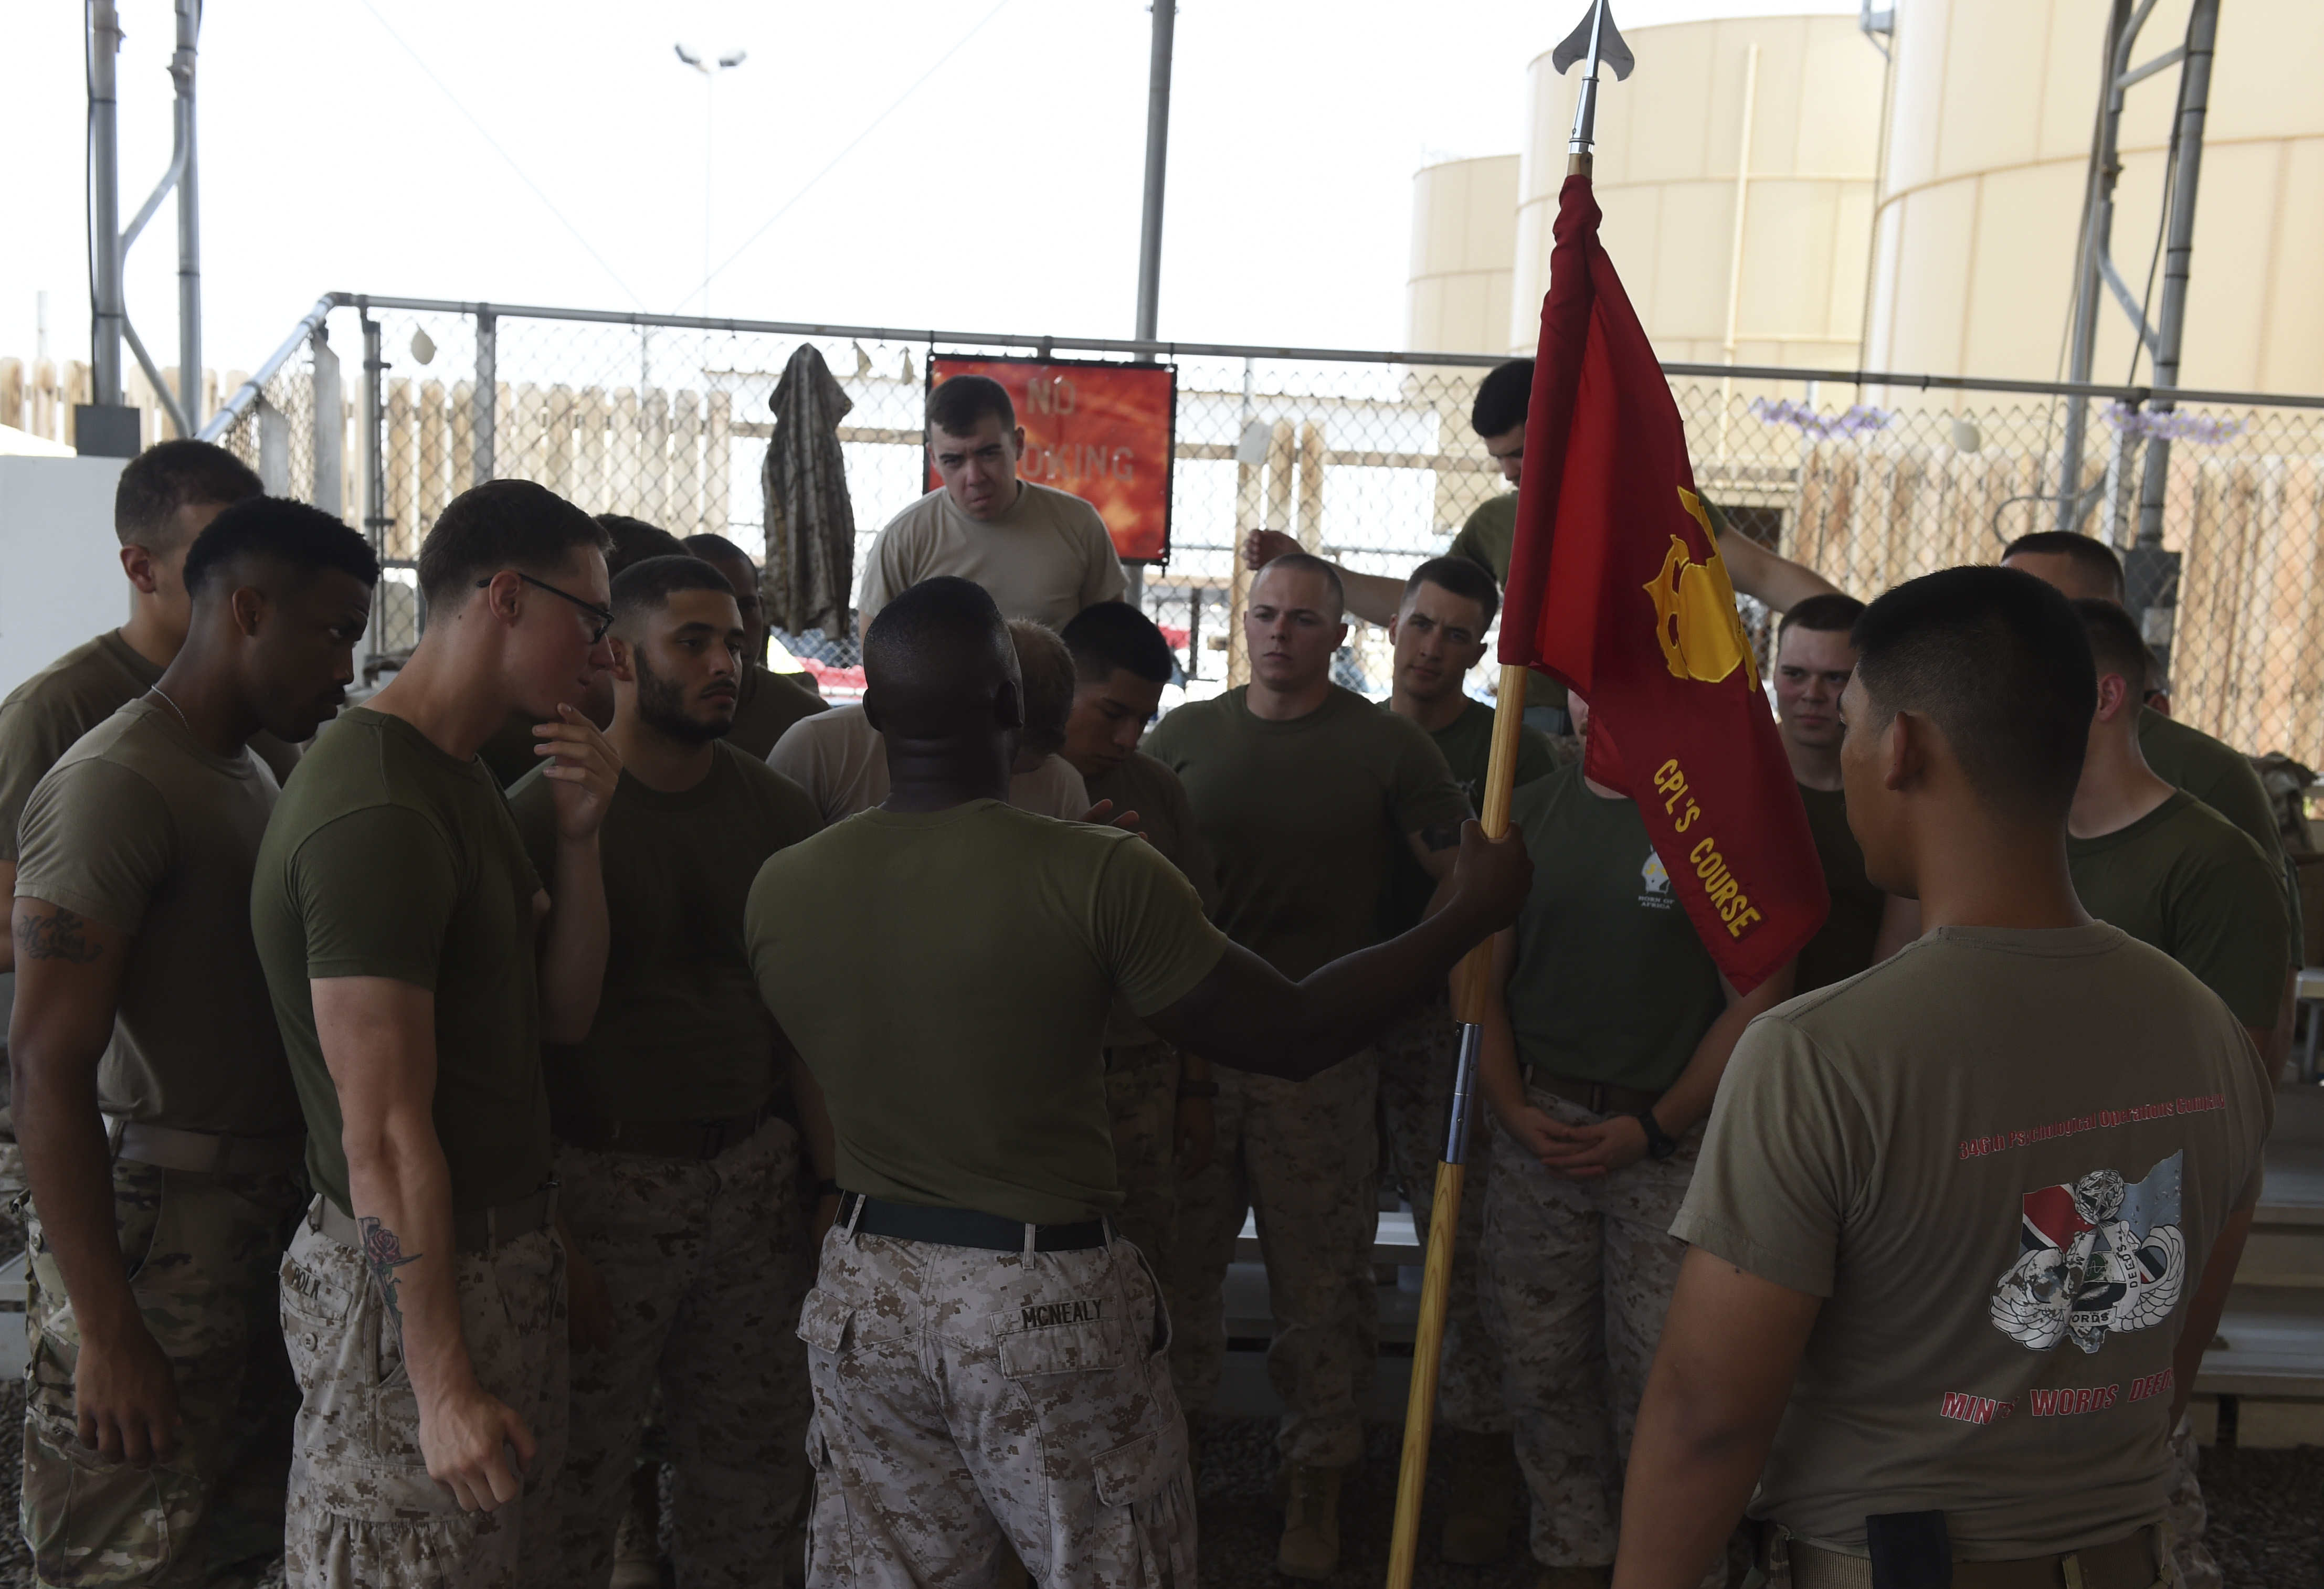 U.S. Marine Corps Sgt. Tyree McNealy, assigned to Combined Joint Task Force-Horn of Africa, speaks to students in the Corporal's Course at Camp Lemonnier, Djibouti, May 24, 2017. The intent of the course is to equip and prepare Marines to smartly transition from being subordinates to being small unit leaders. During this course, Corporals gain insight into key facets of their new grade and responsibilities and are thus prepared to take on future leadership challenges. (U.S. Air Force photo by Staff Sgt. Eboni Prince)